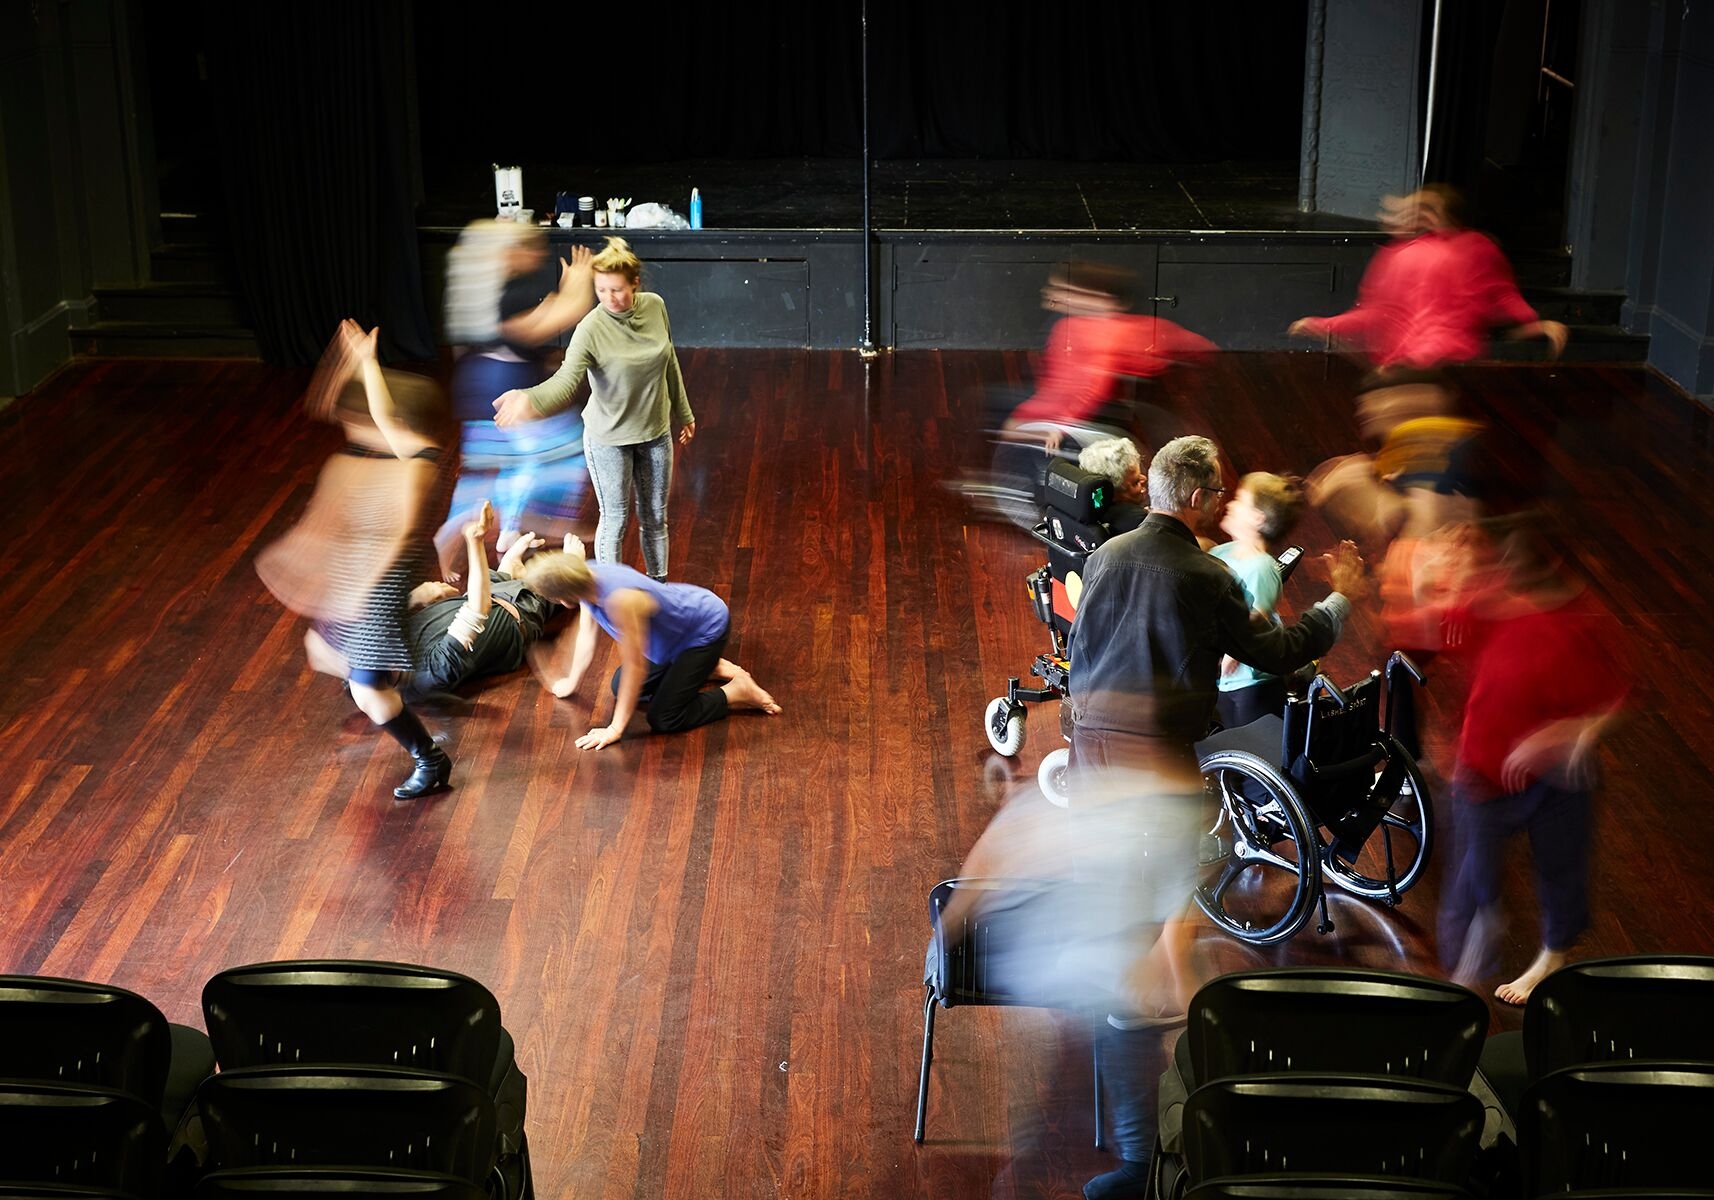 Group of people moving in rehearsal space with wooden floors.